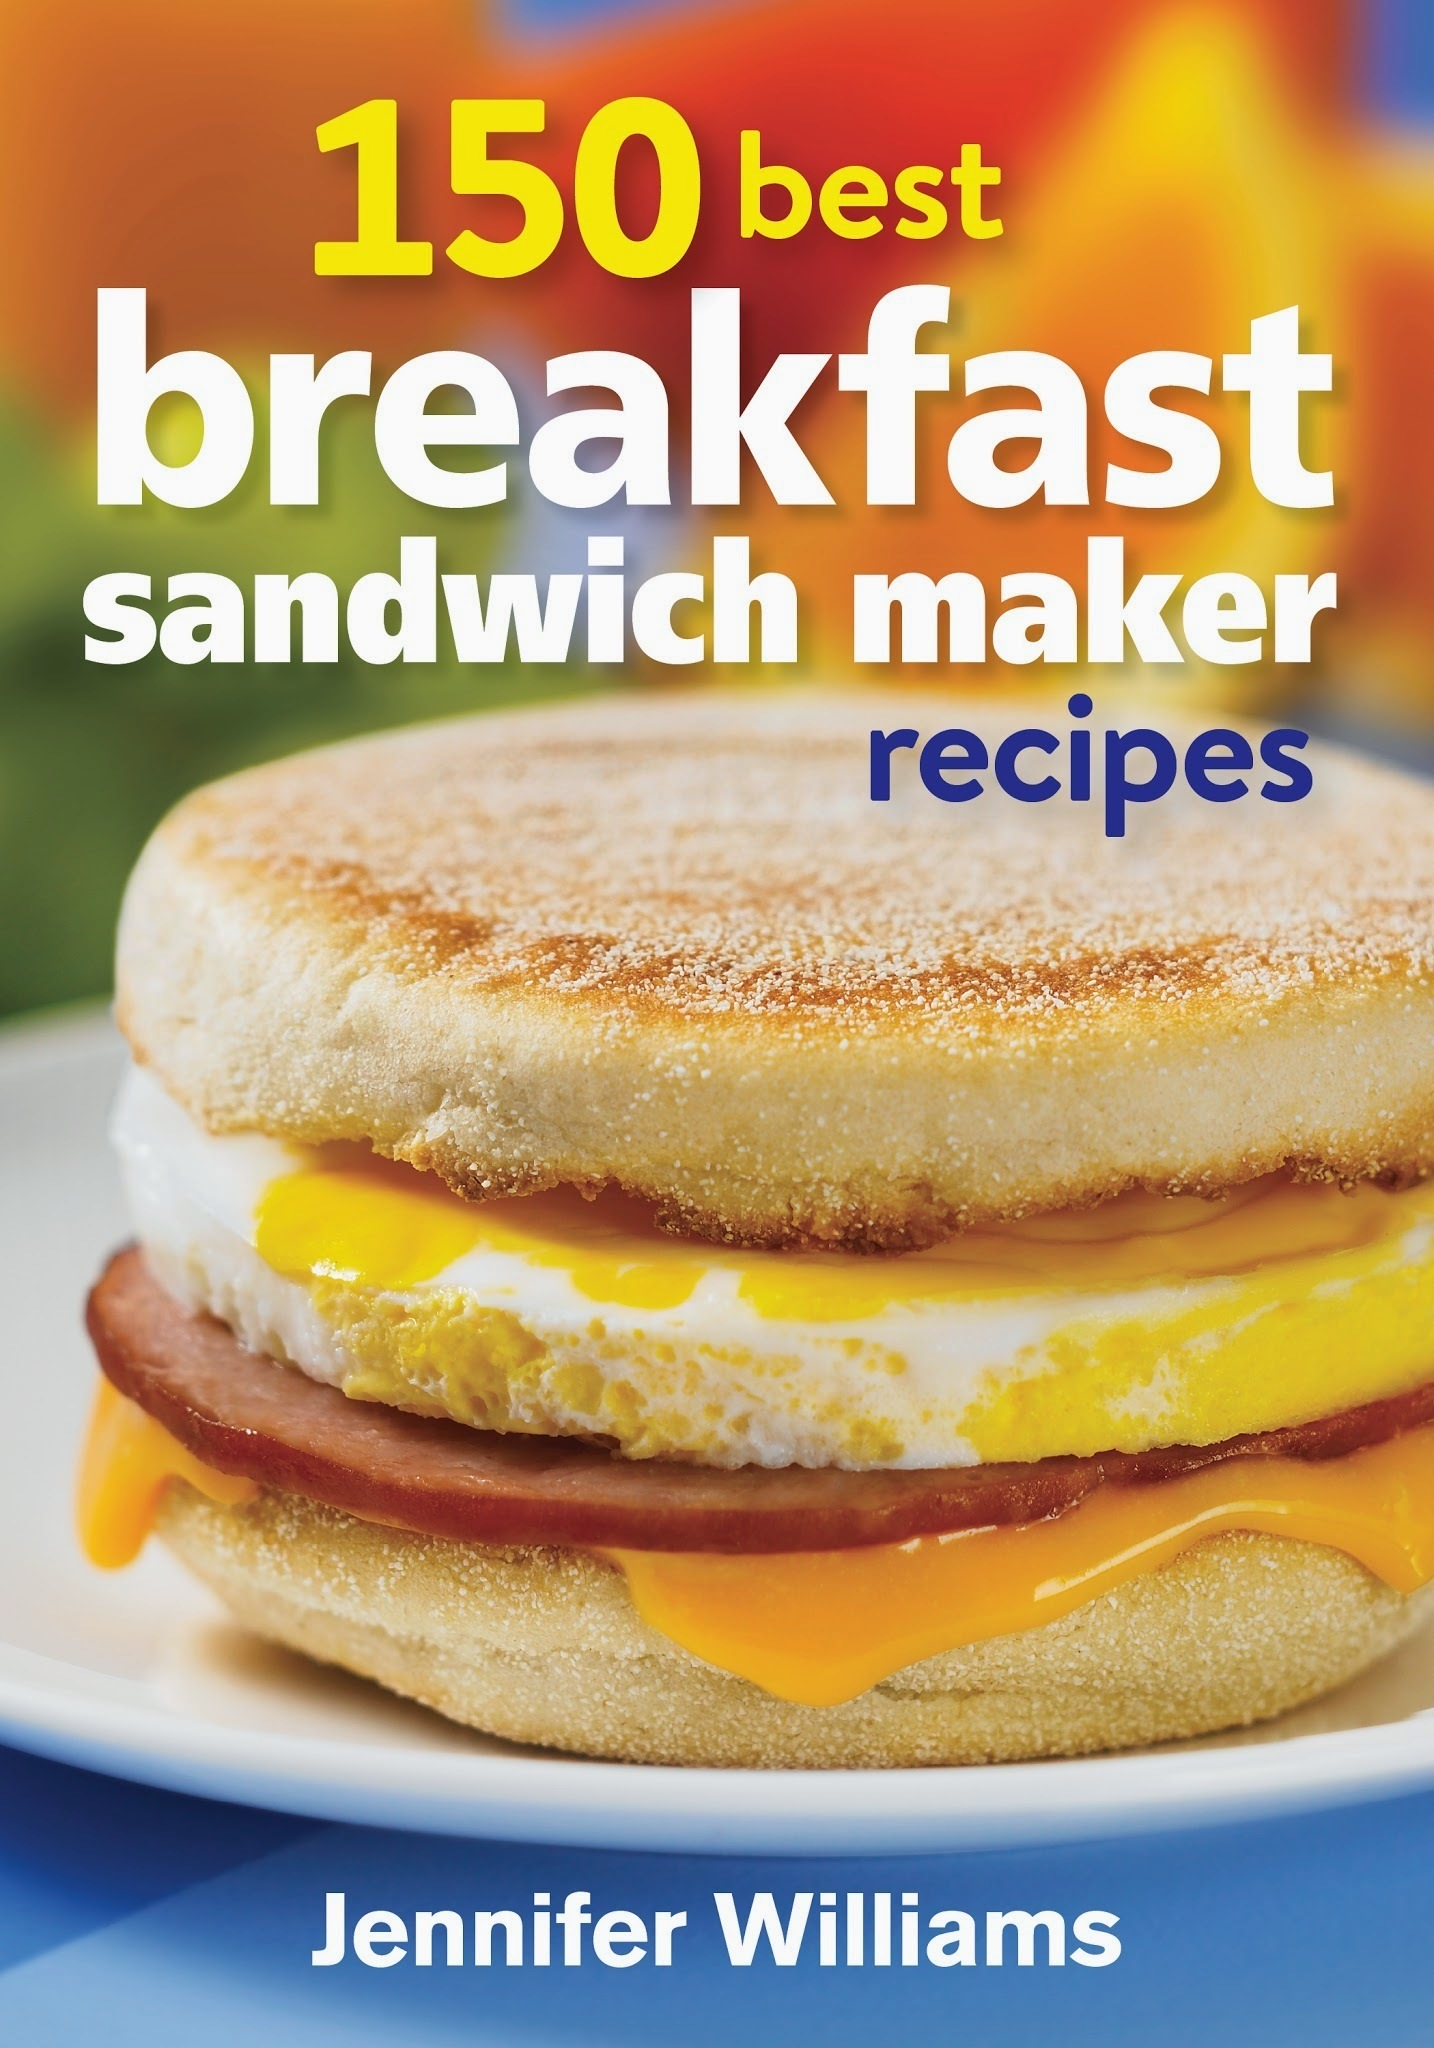 Giveaway and 150 Best Breakfast Sandwich Maker Recipes Review!